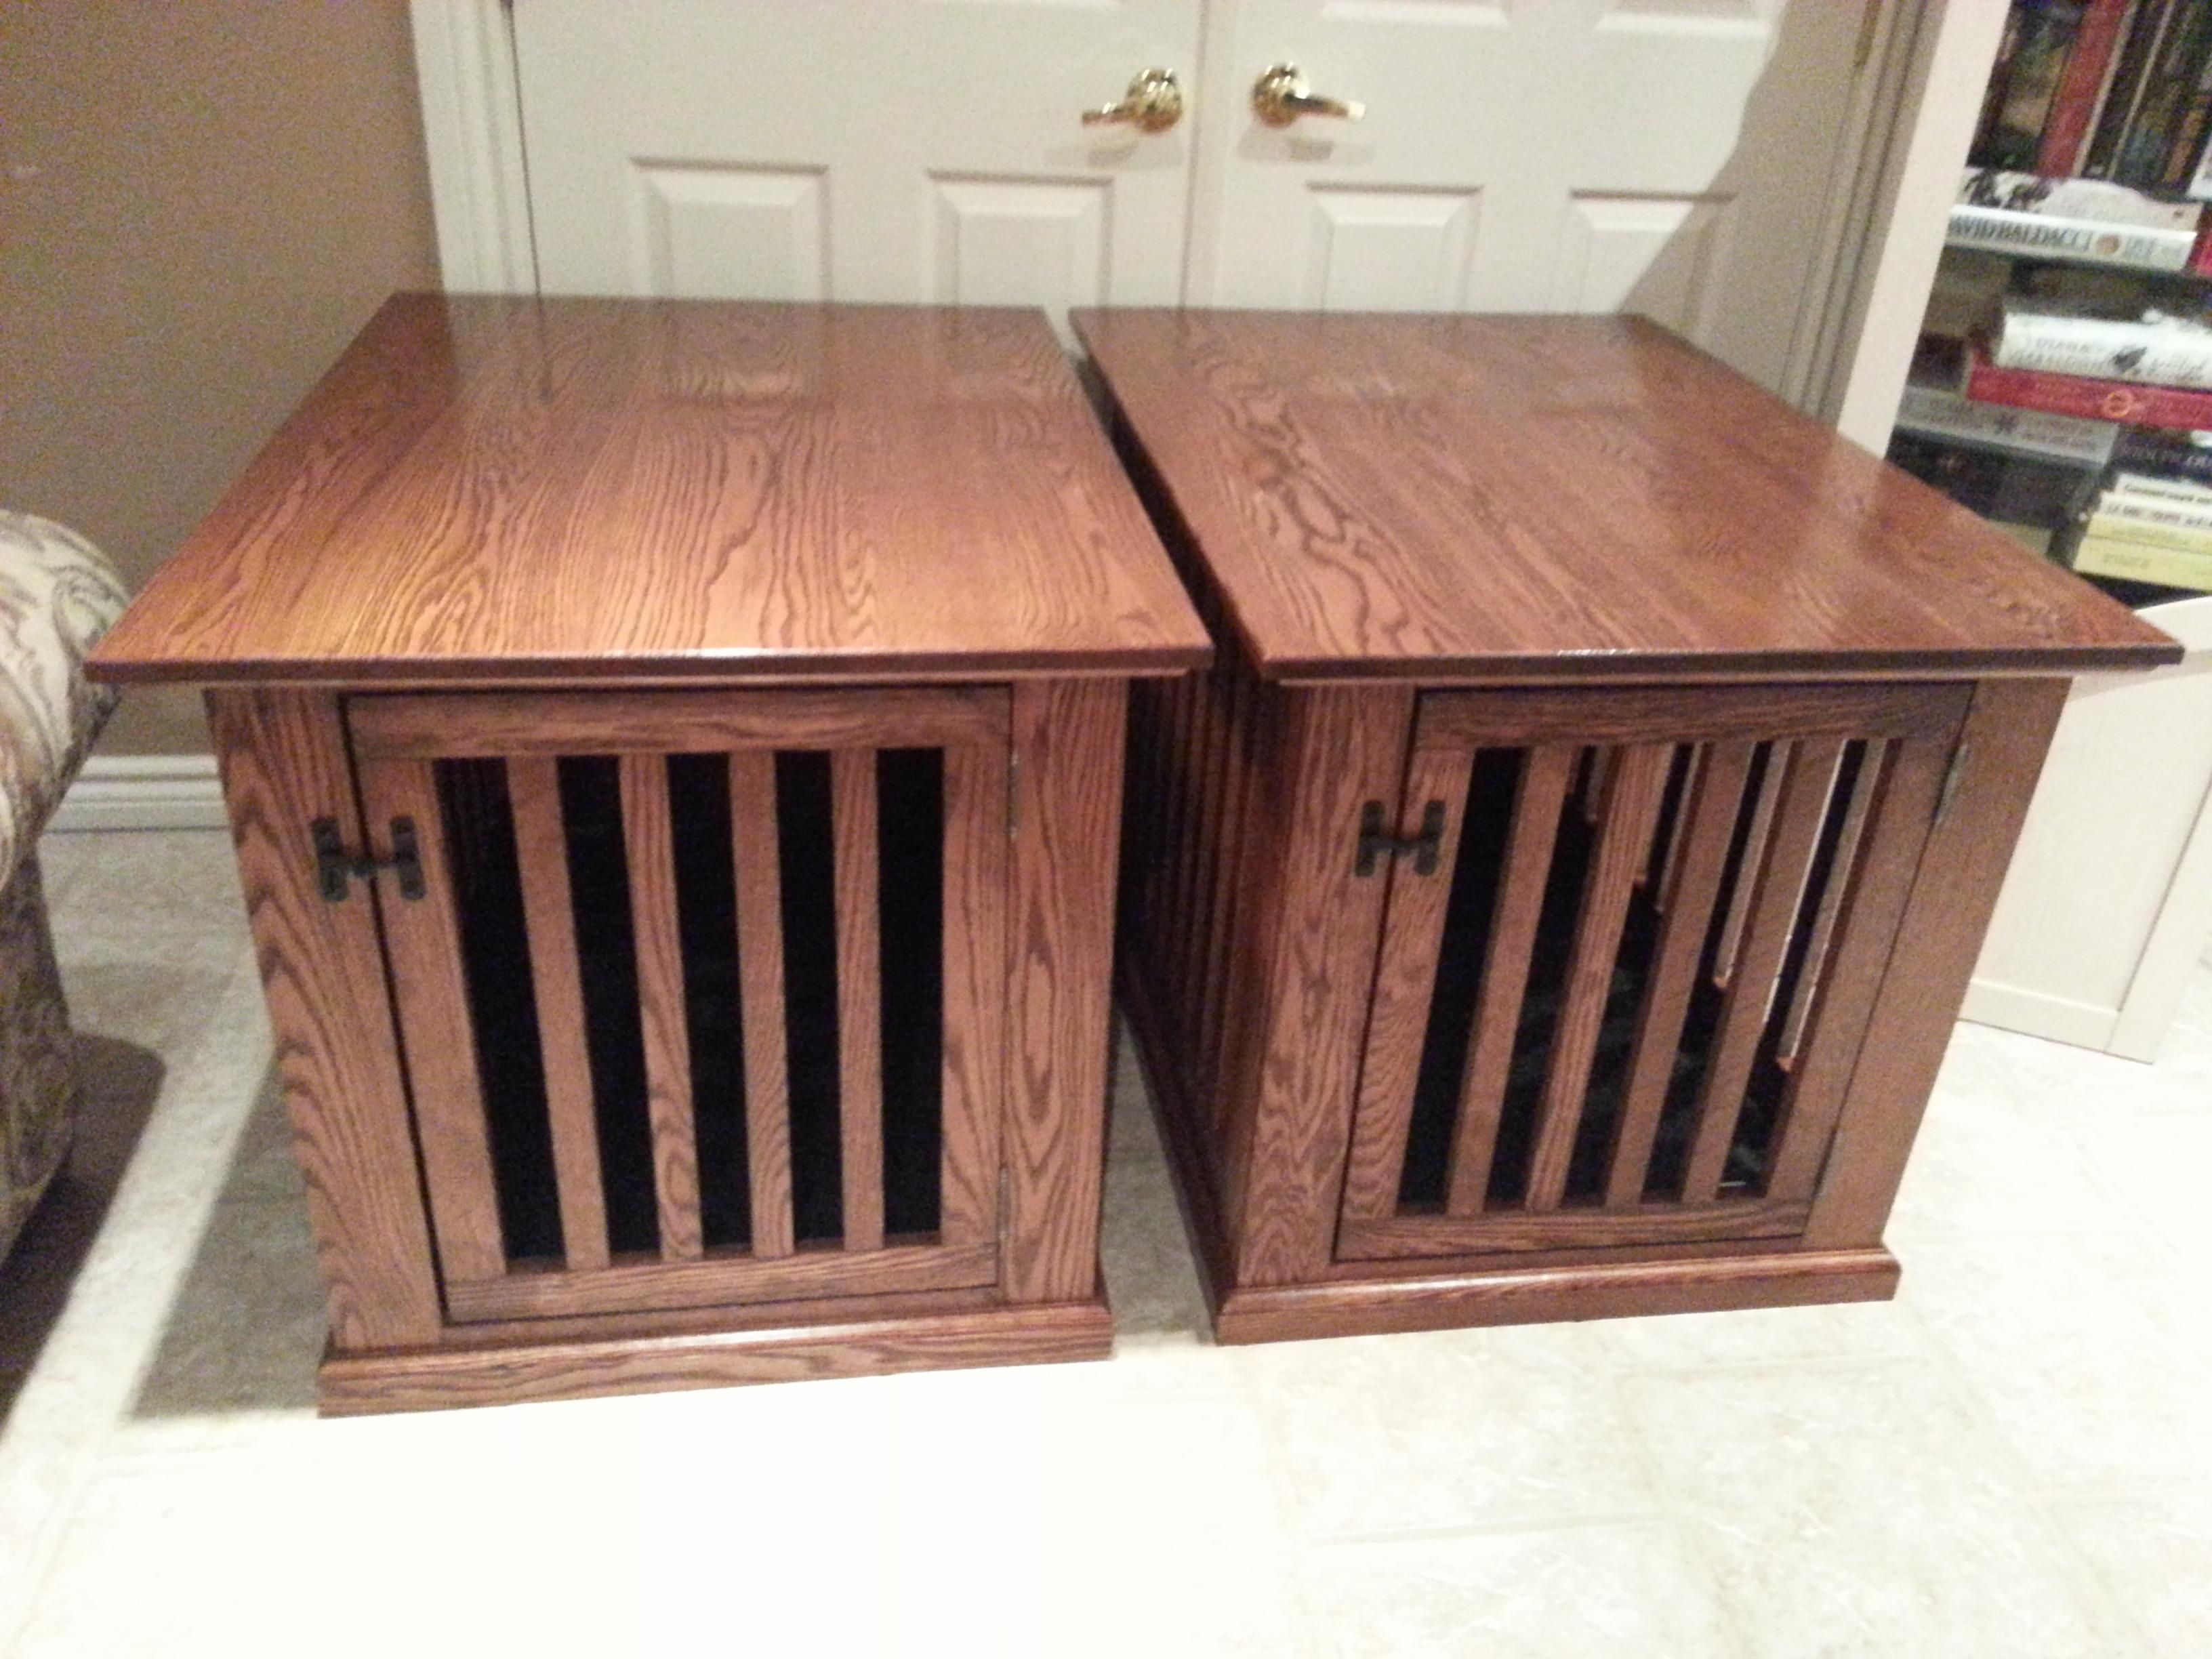 made couple dog crate end tables solid oak and ton crates that look like mortise tenons magnolia farms fixer upper hours operation promo code off antique drum table breegin